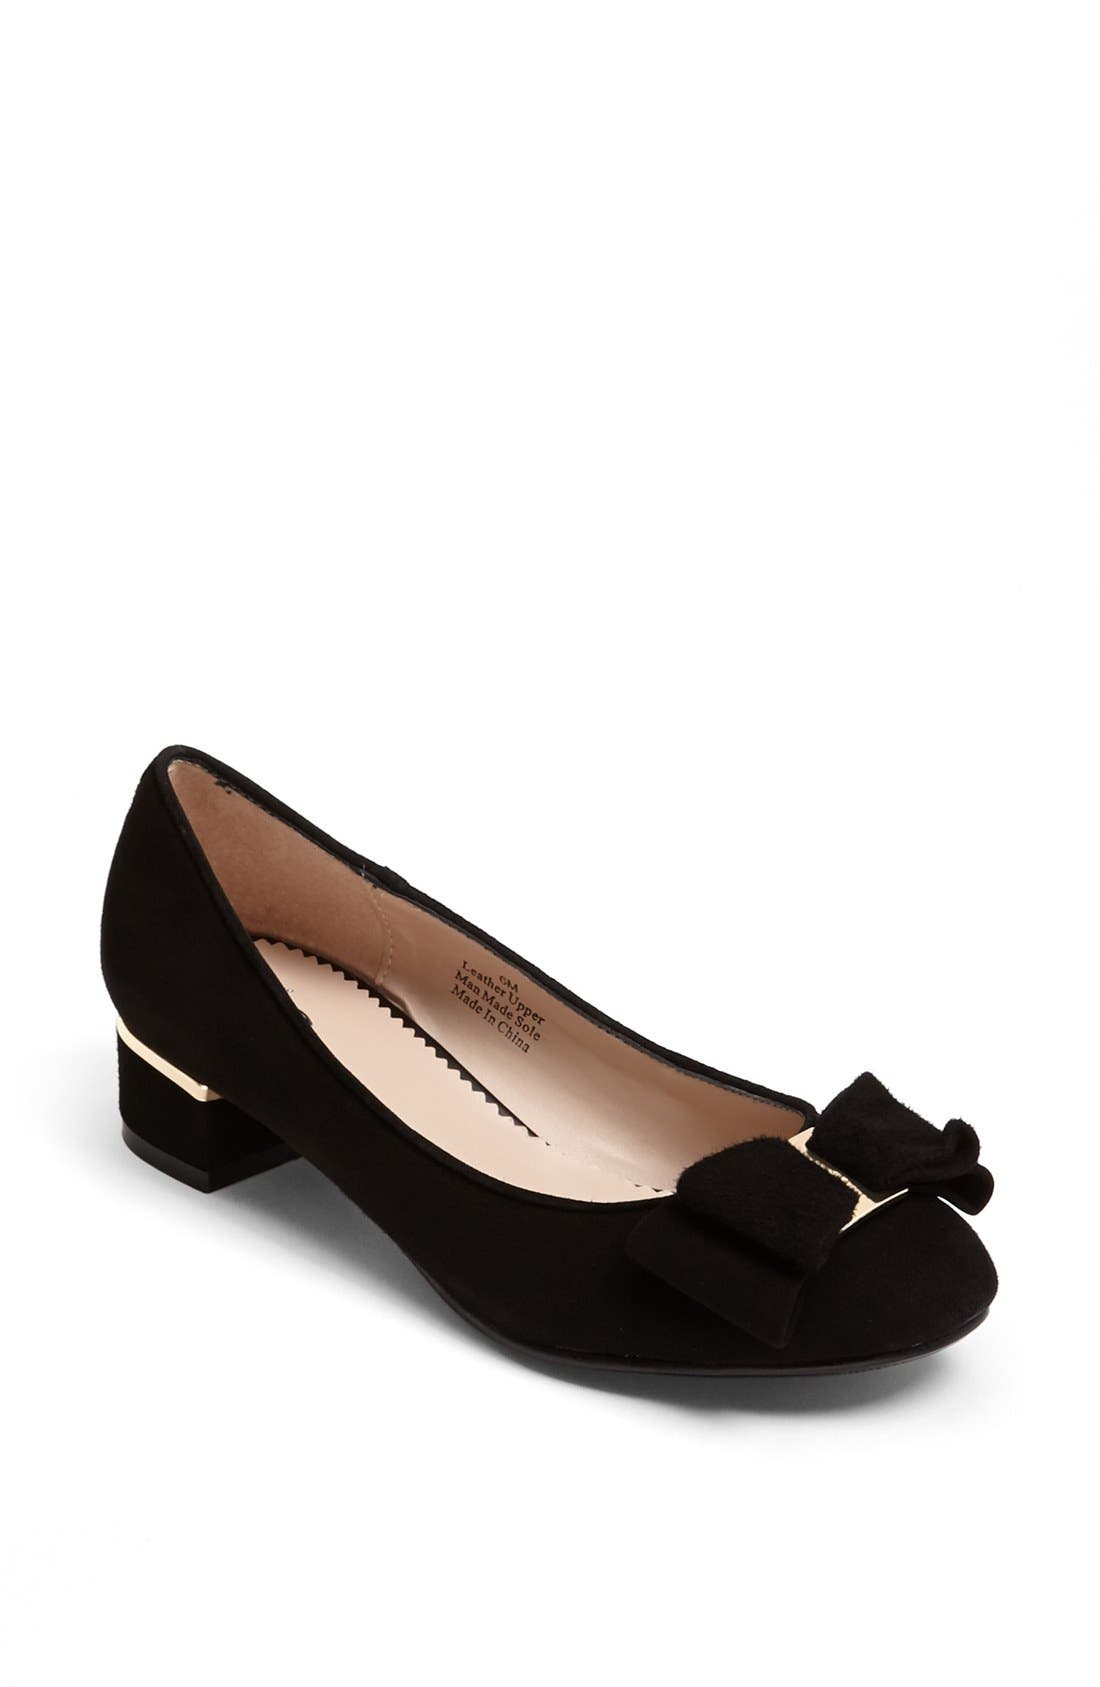 Alternate Image 1 Selected - BP. 'Penni' Pump (Women)